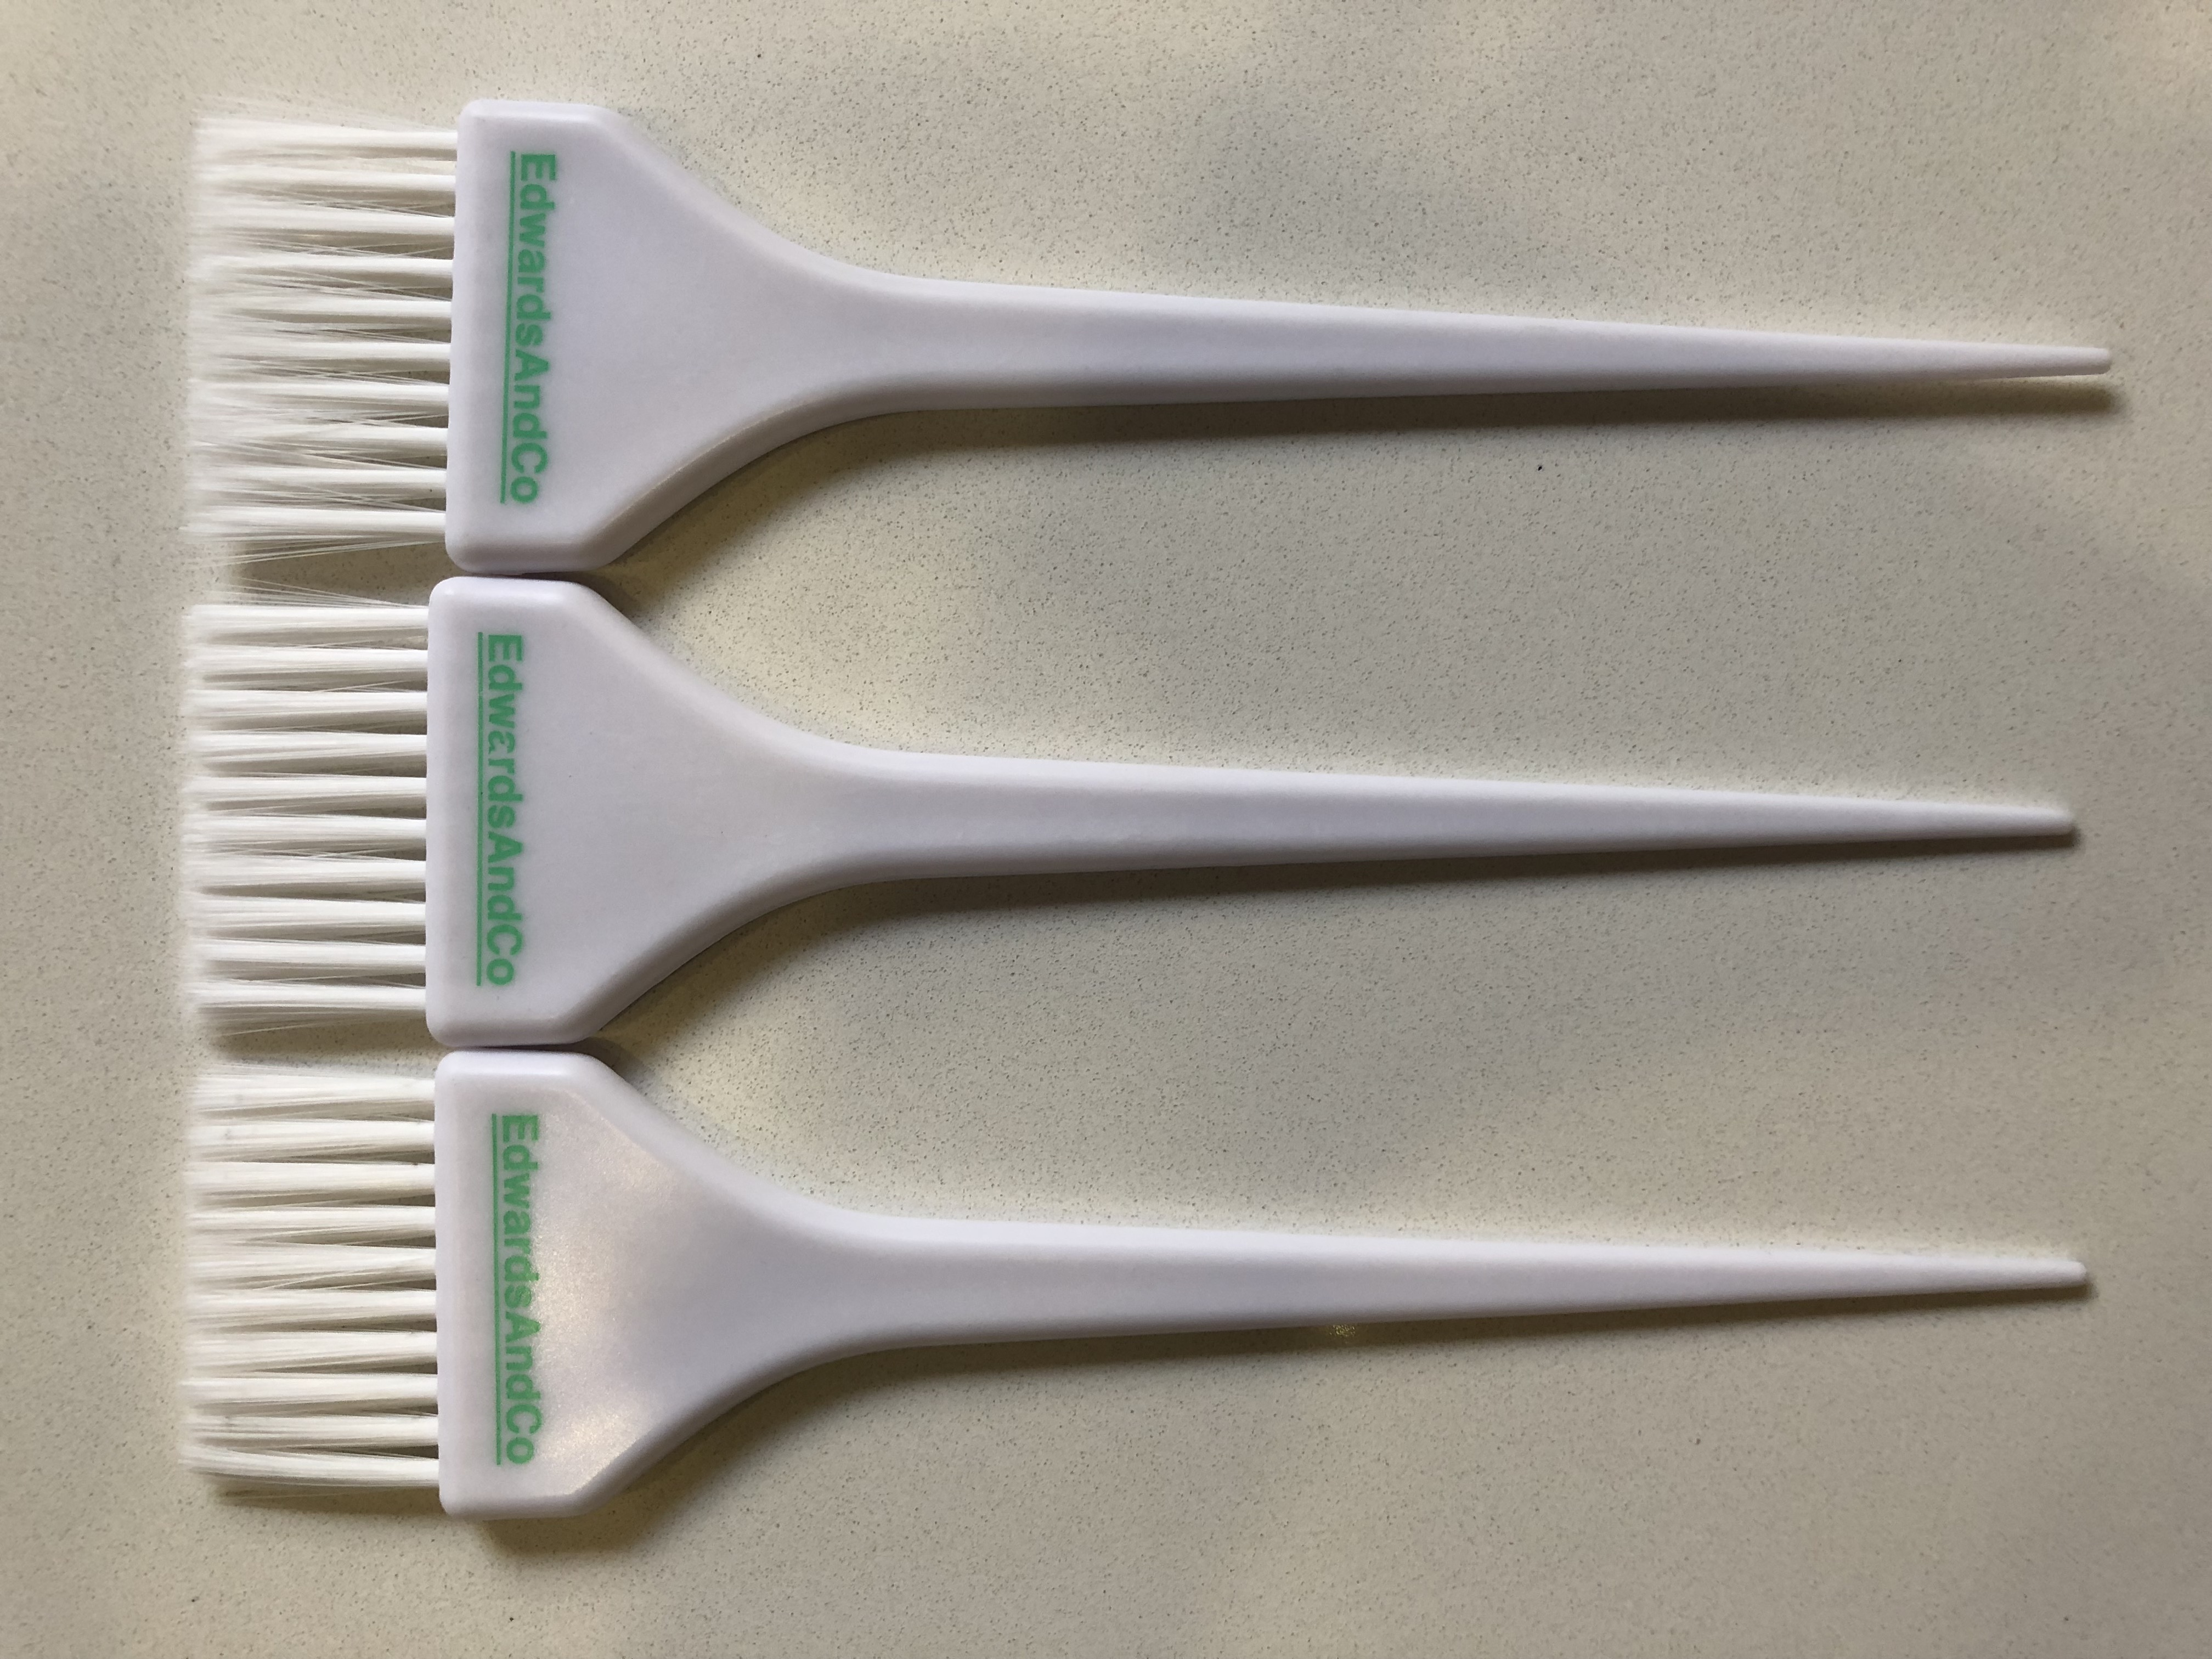 Edwards And Co. Large white brush (3 pack)